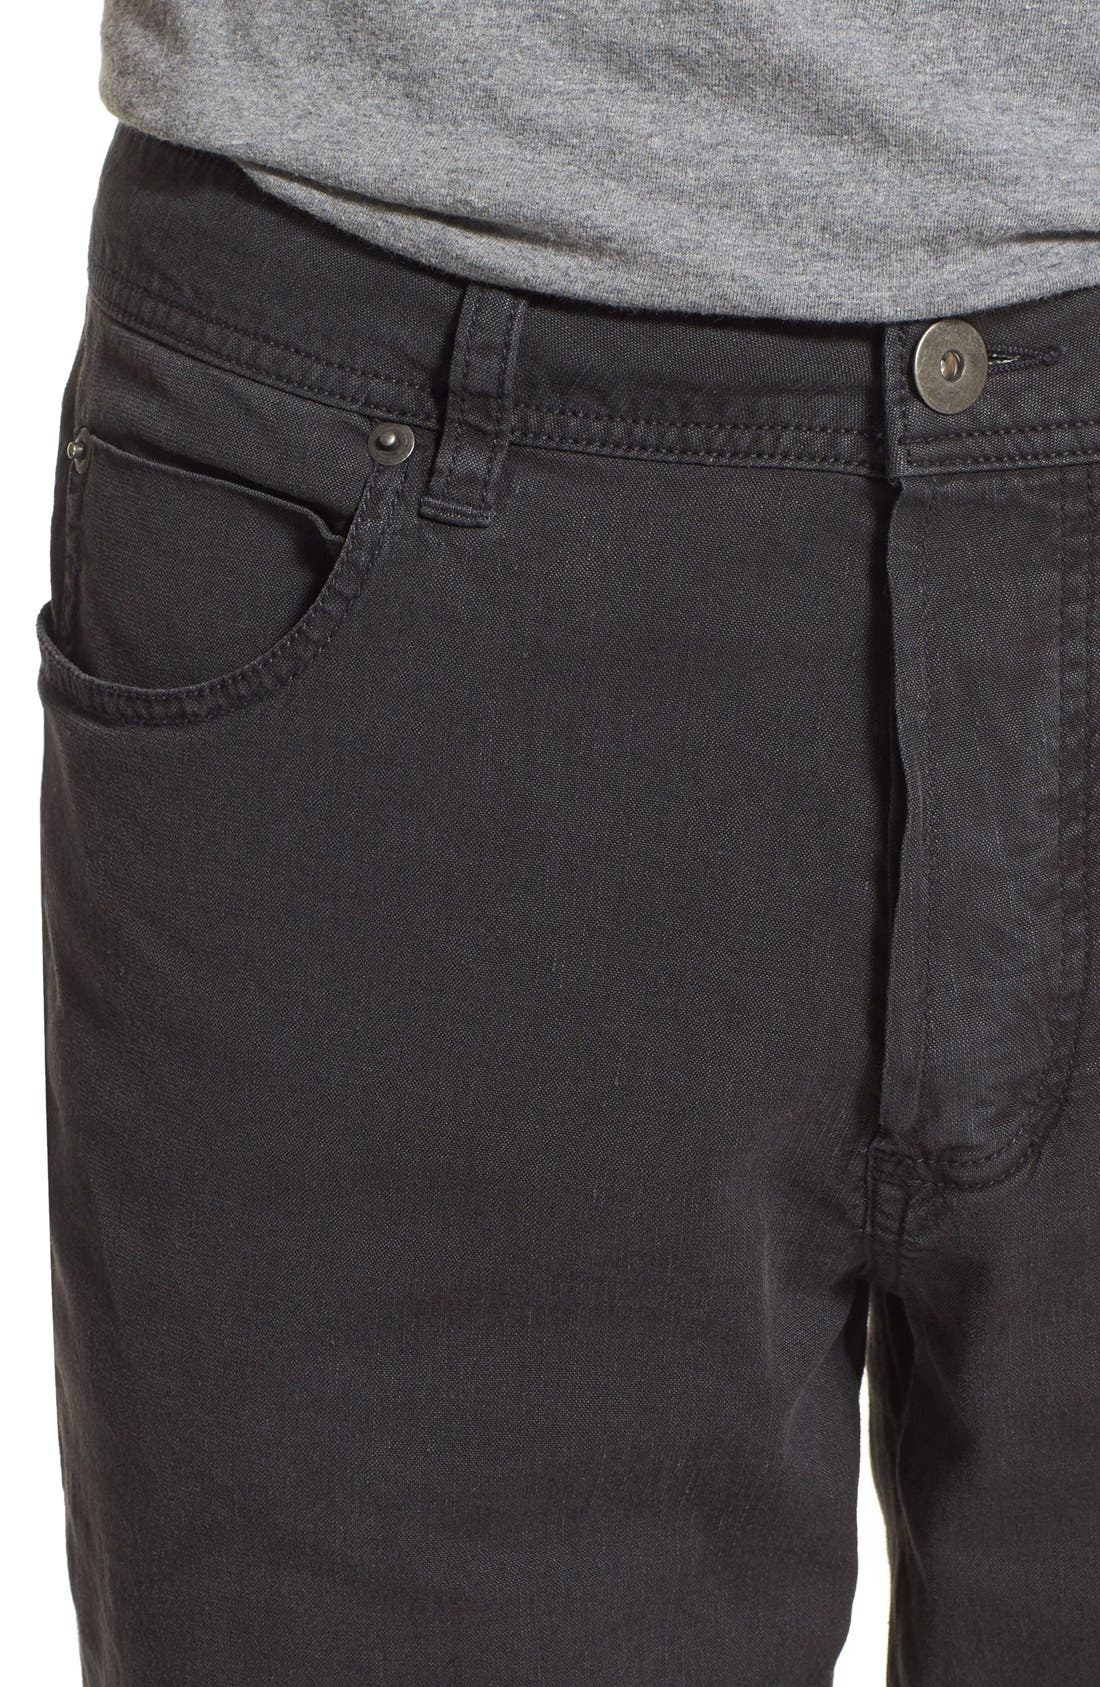 Straight Leg Five-Pocket Pants,                             Alternate thumbnail 11, color,                             CARBON PIGMENT